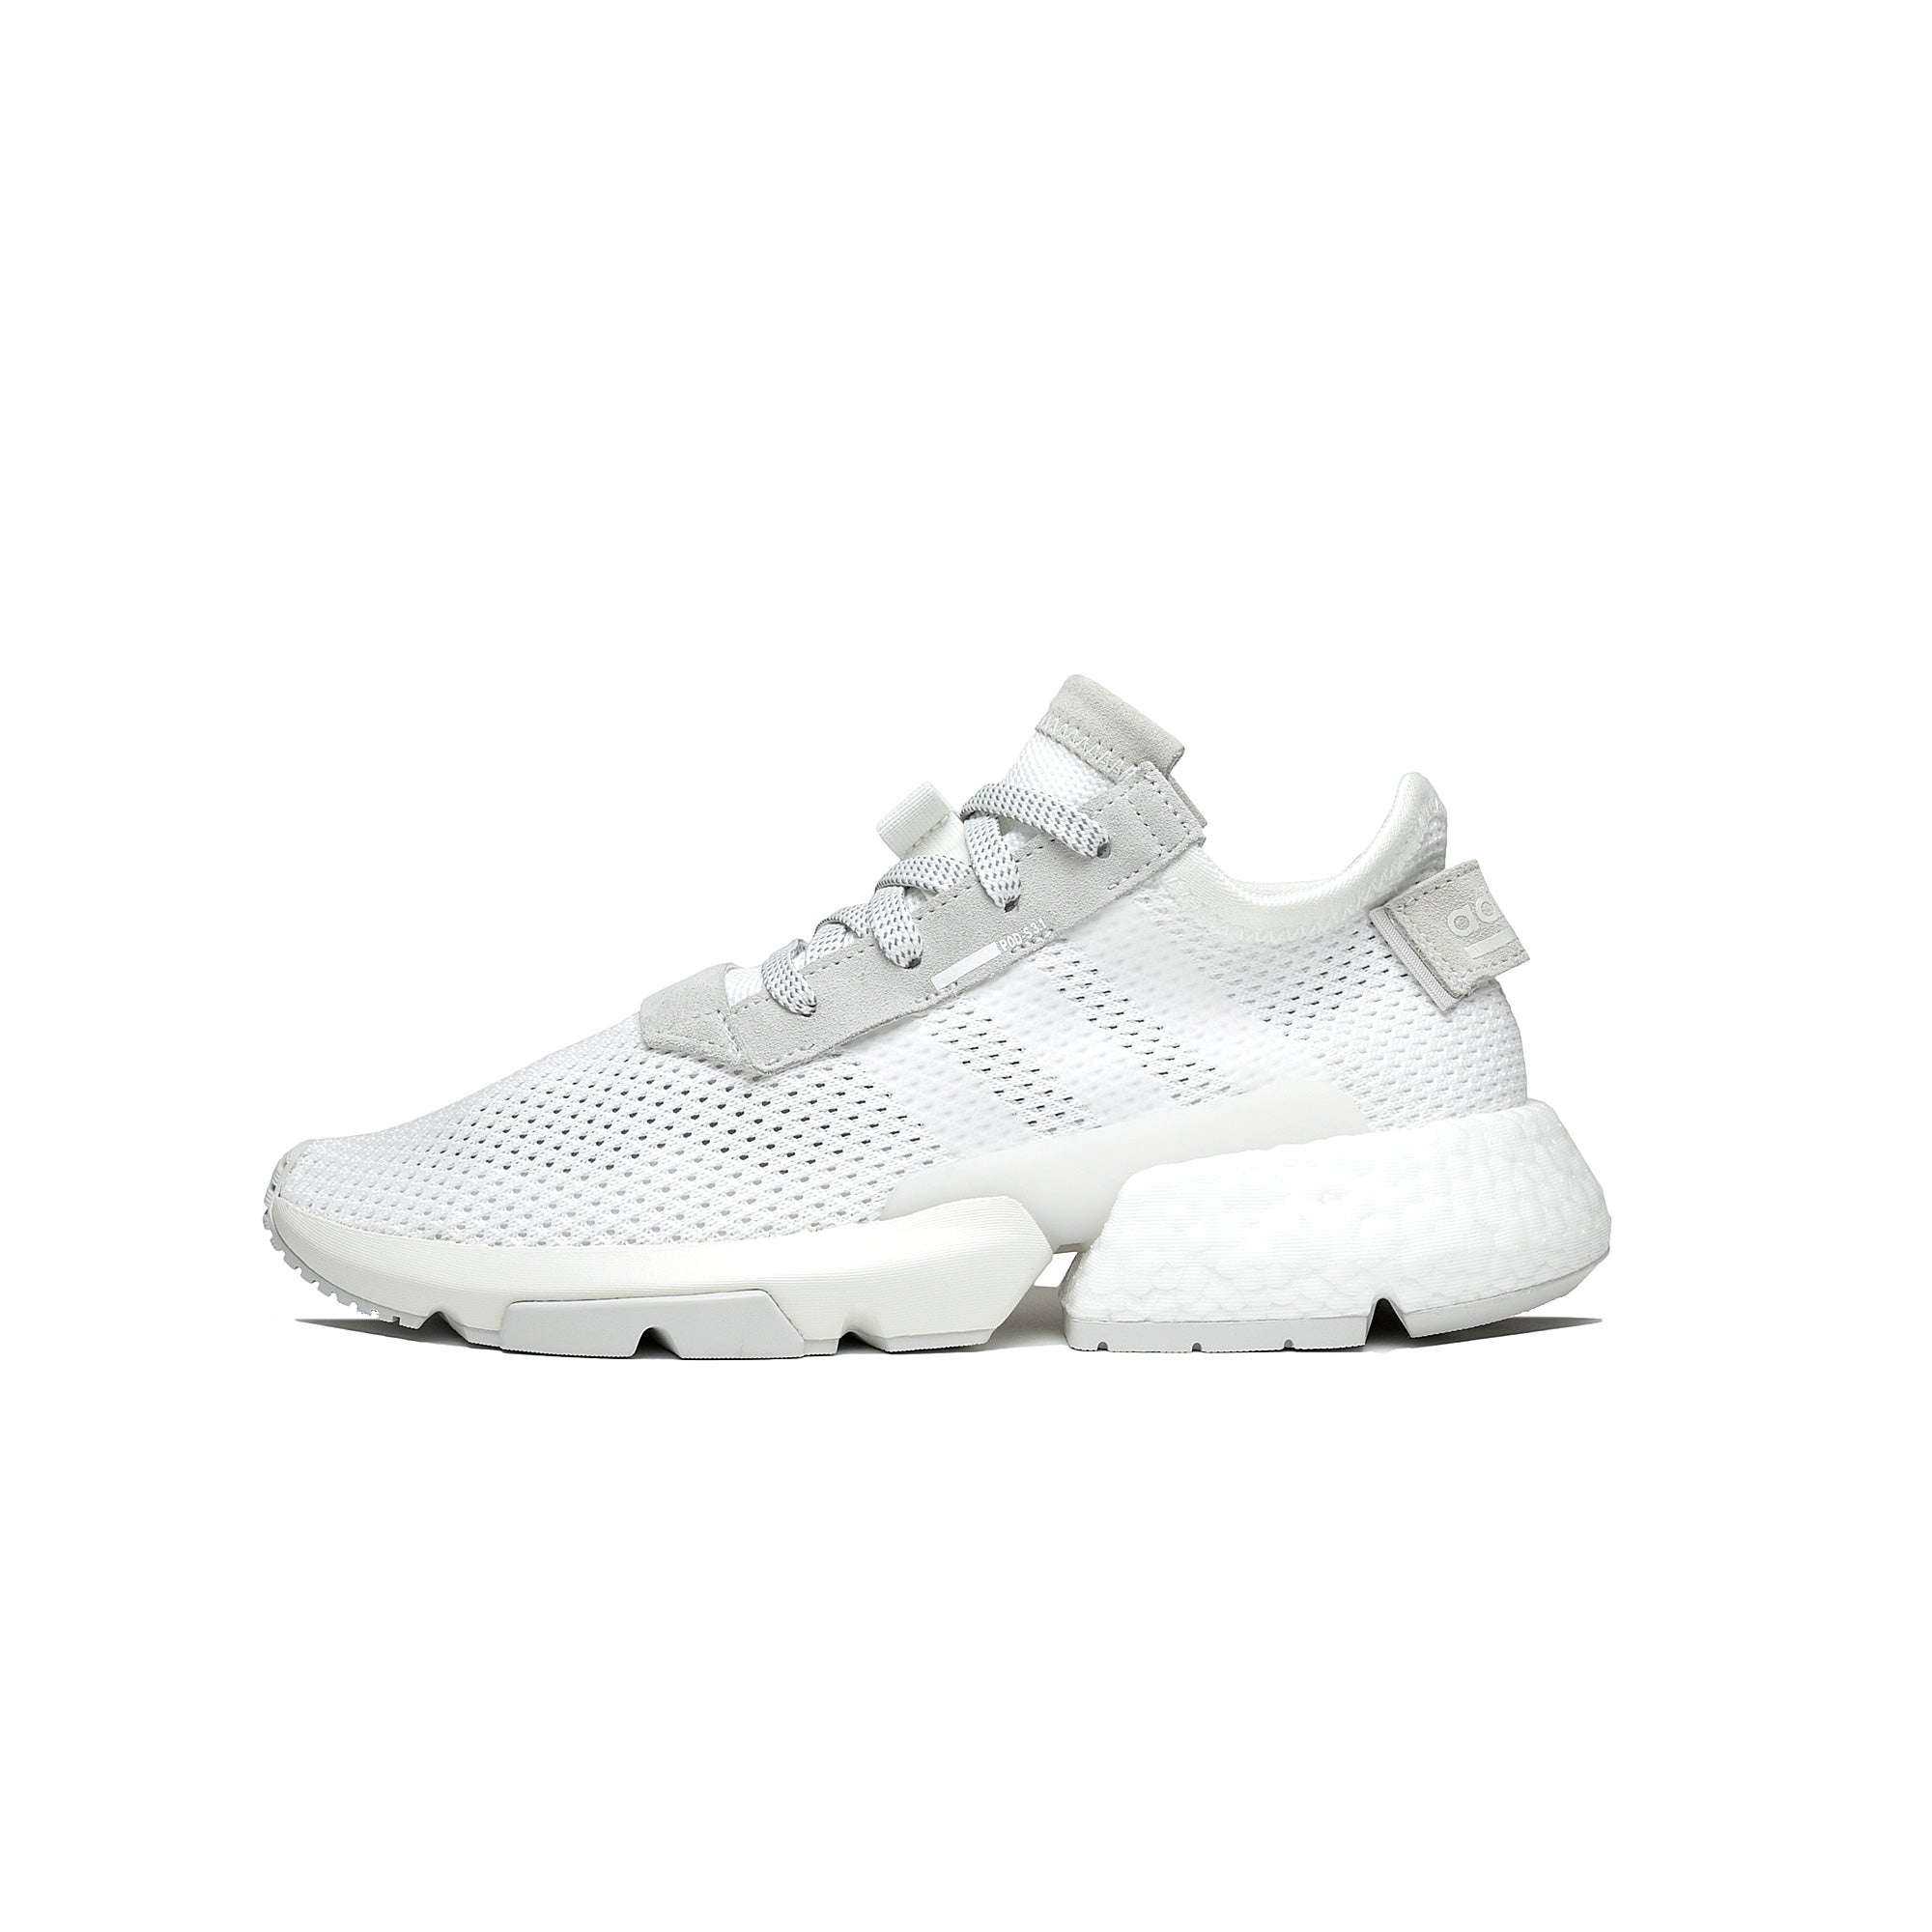 official photos 05f82 8160c Adidas POD S3.1 System B28089